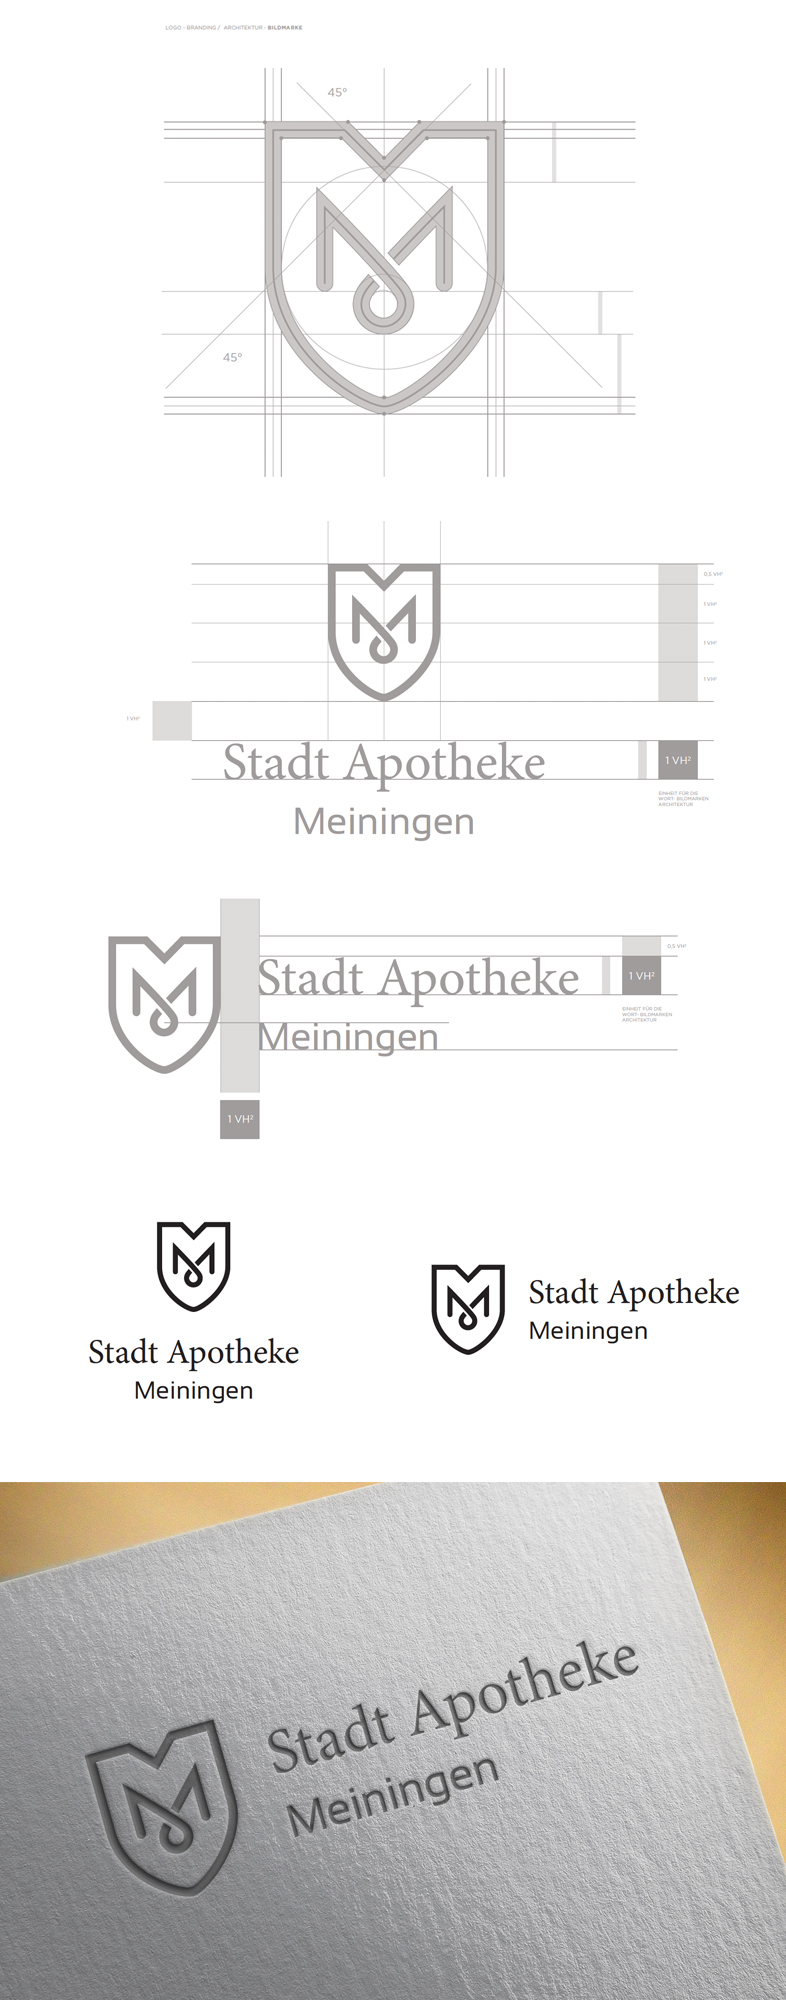 Auszug: Corporate Design